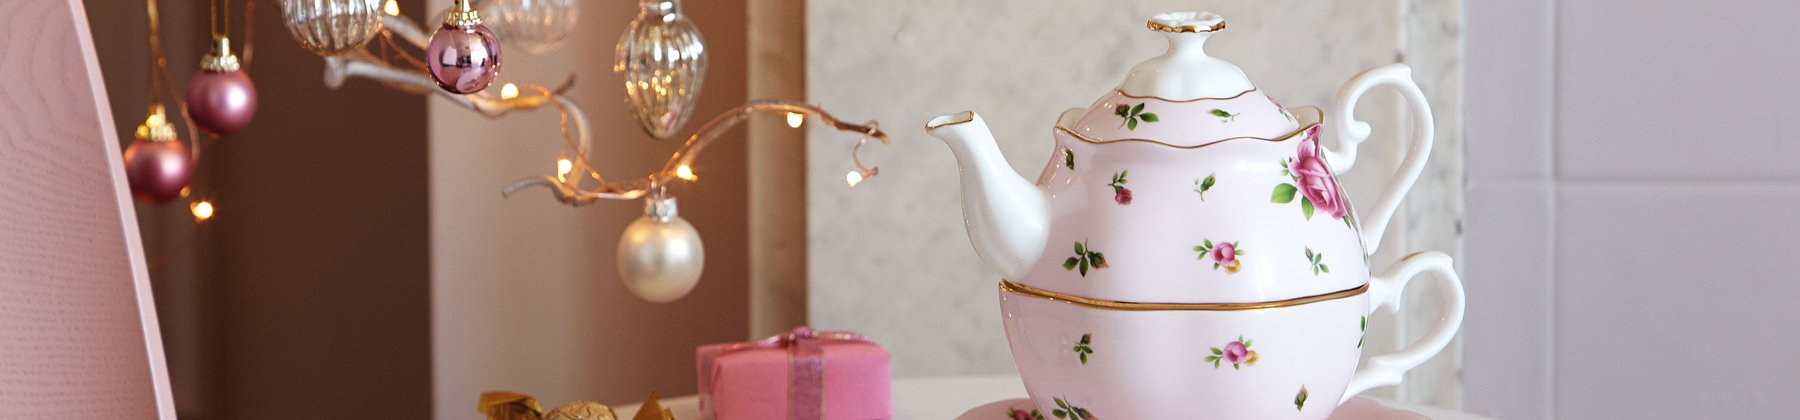 Photo of Royal Albert teapot on a decorated table.